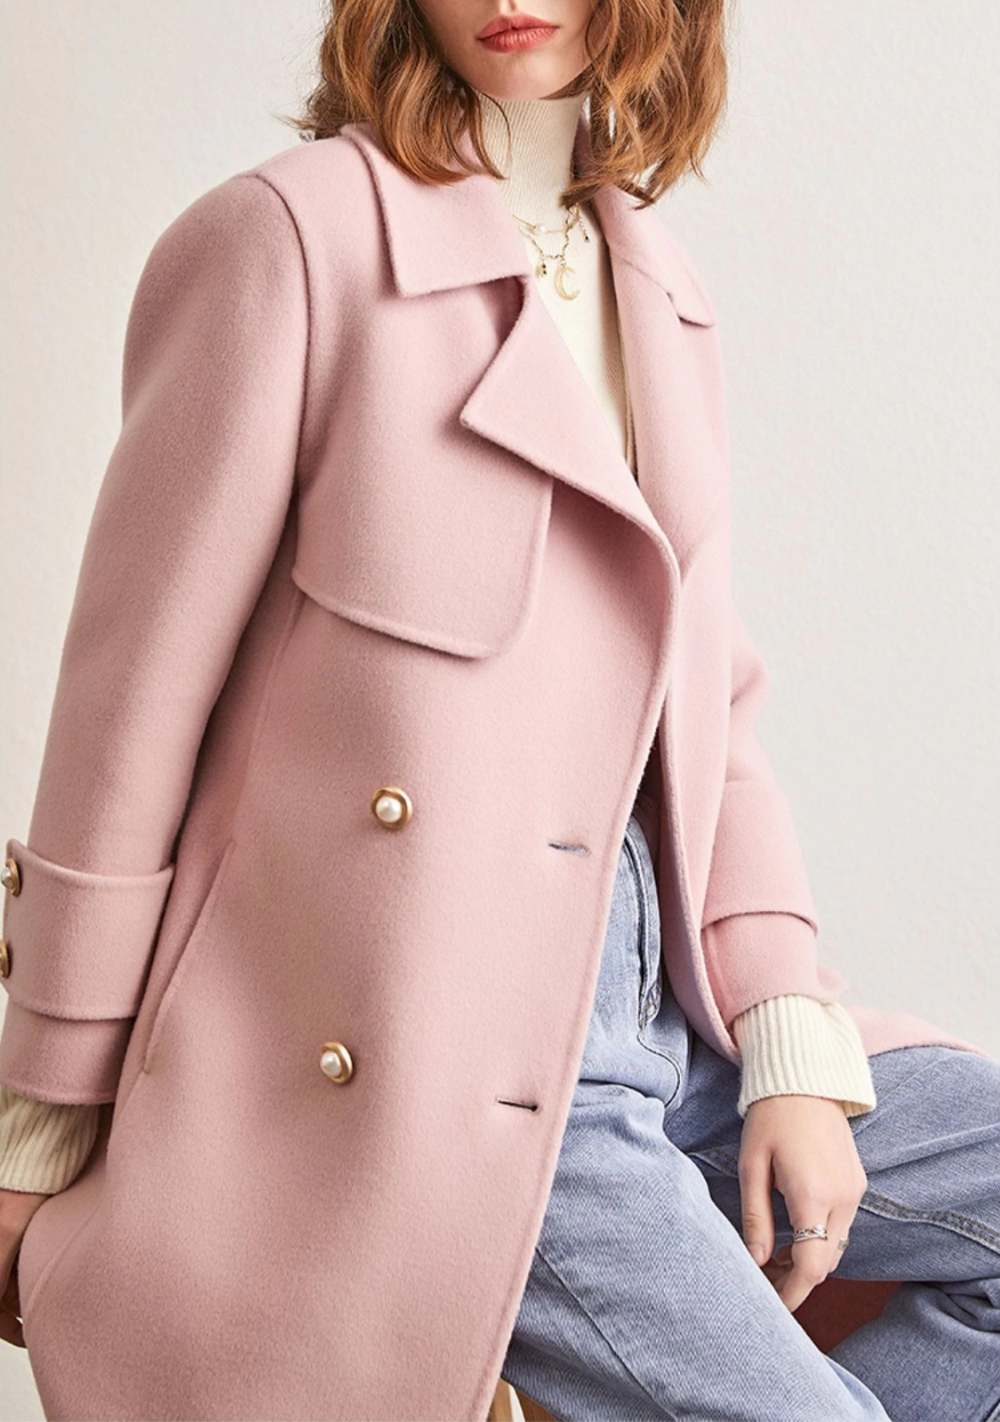 Click Or Tap On The Photo To Shop This Beautiful Pink Wool Coat New Light Pink Double Breasted Warm Coat Outfit Casual Pink Wool Coat Wool Skirt Outfit Winter [ 1422 x 1000 Pixel ]